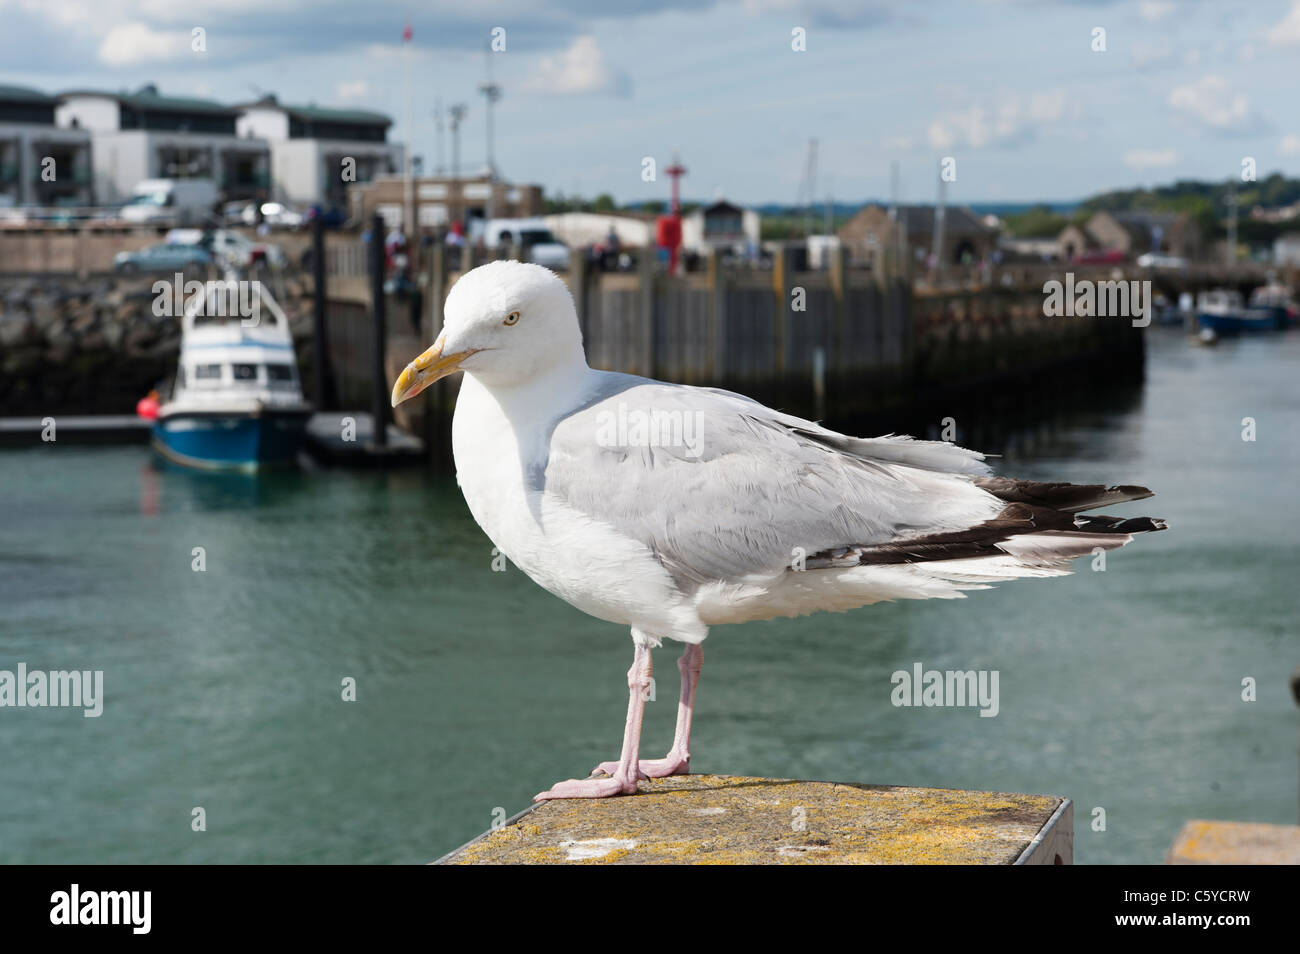 Closeup of a white and gray seagull standing on a post in a fishing harbor - Stock Image